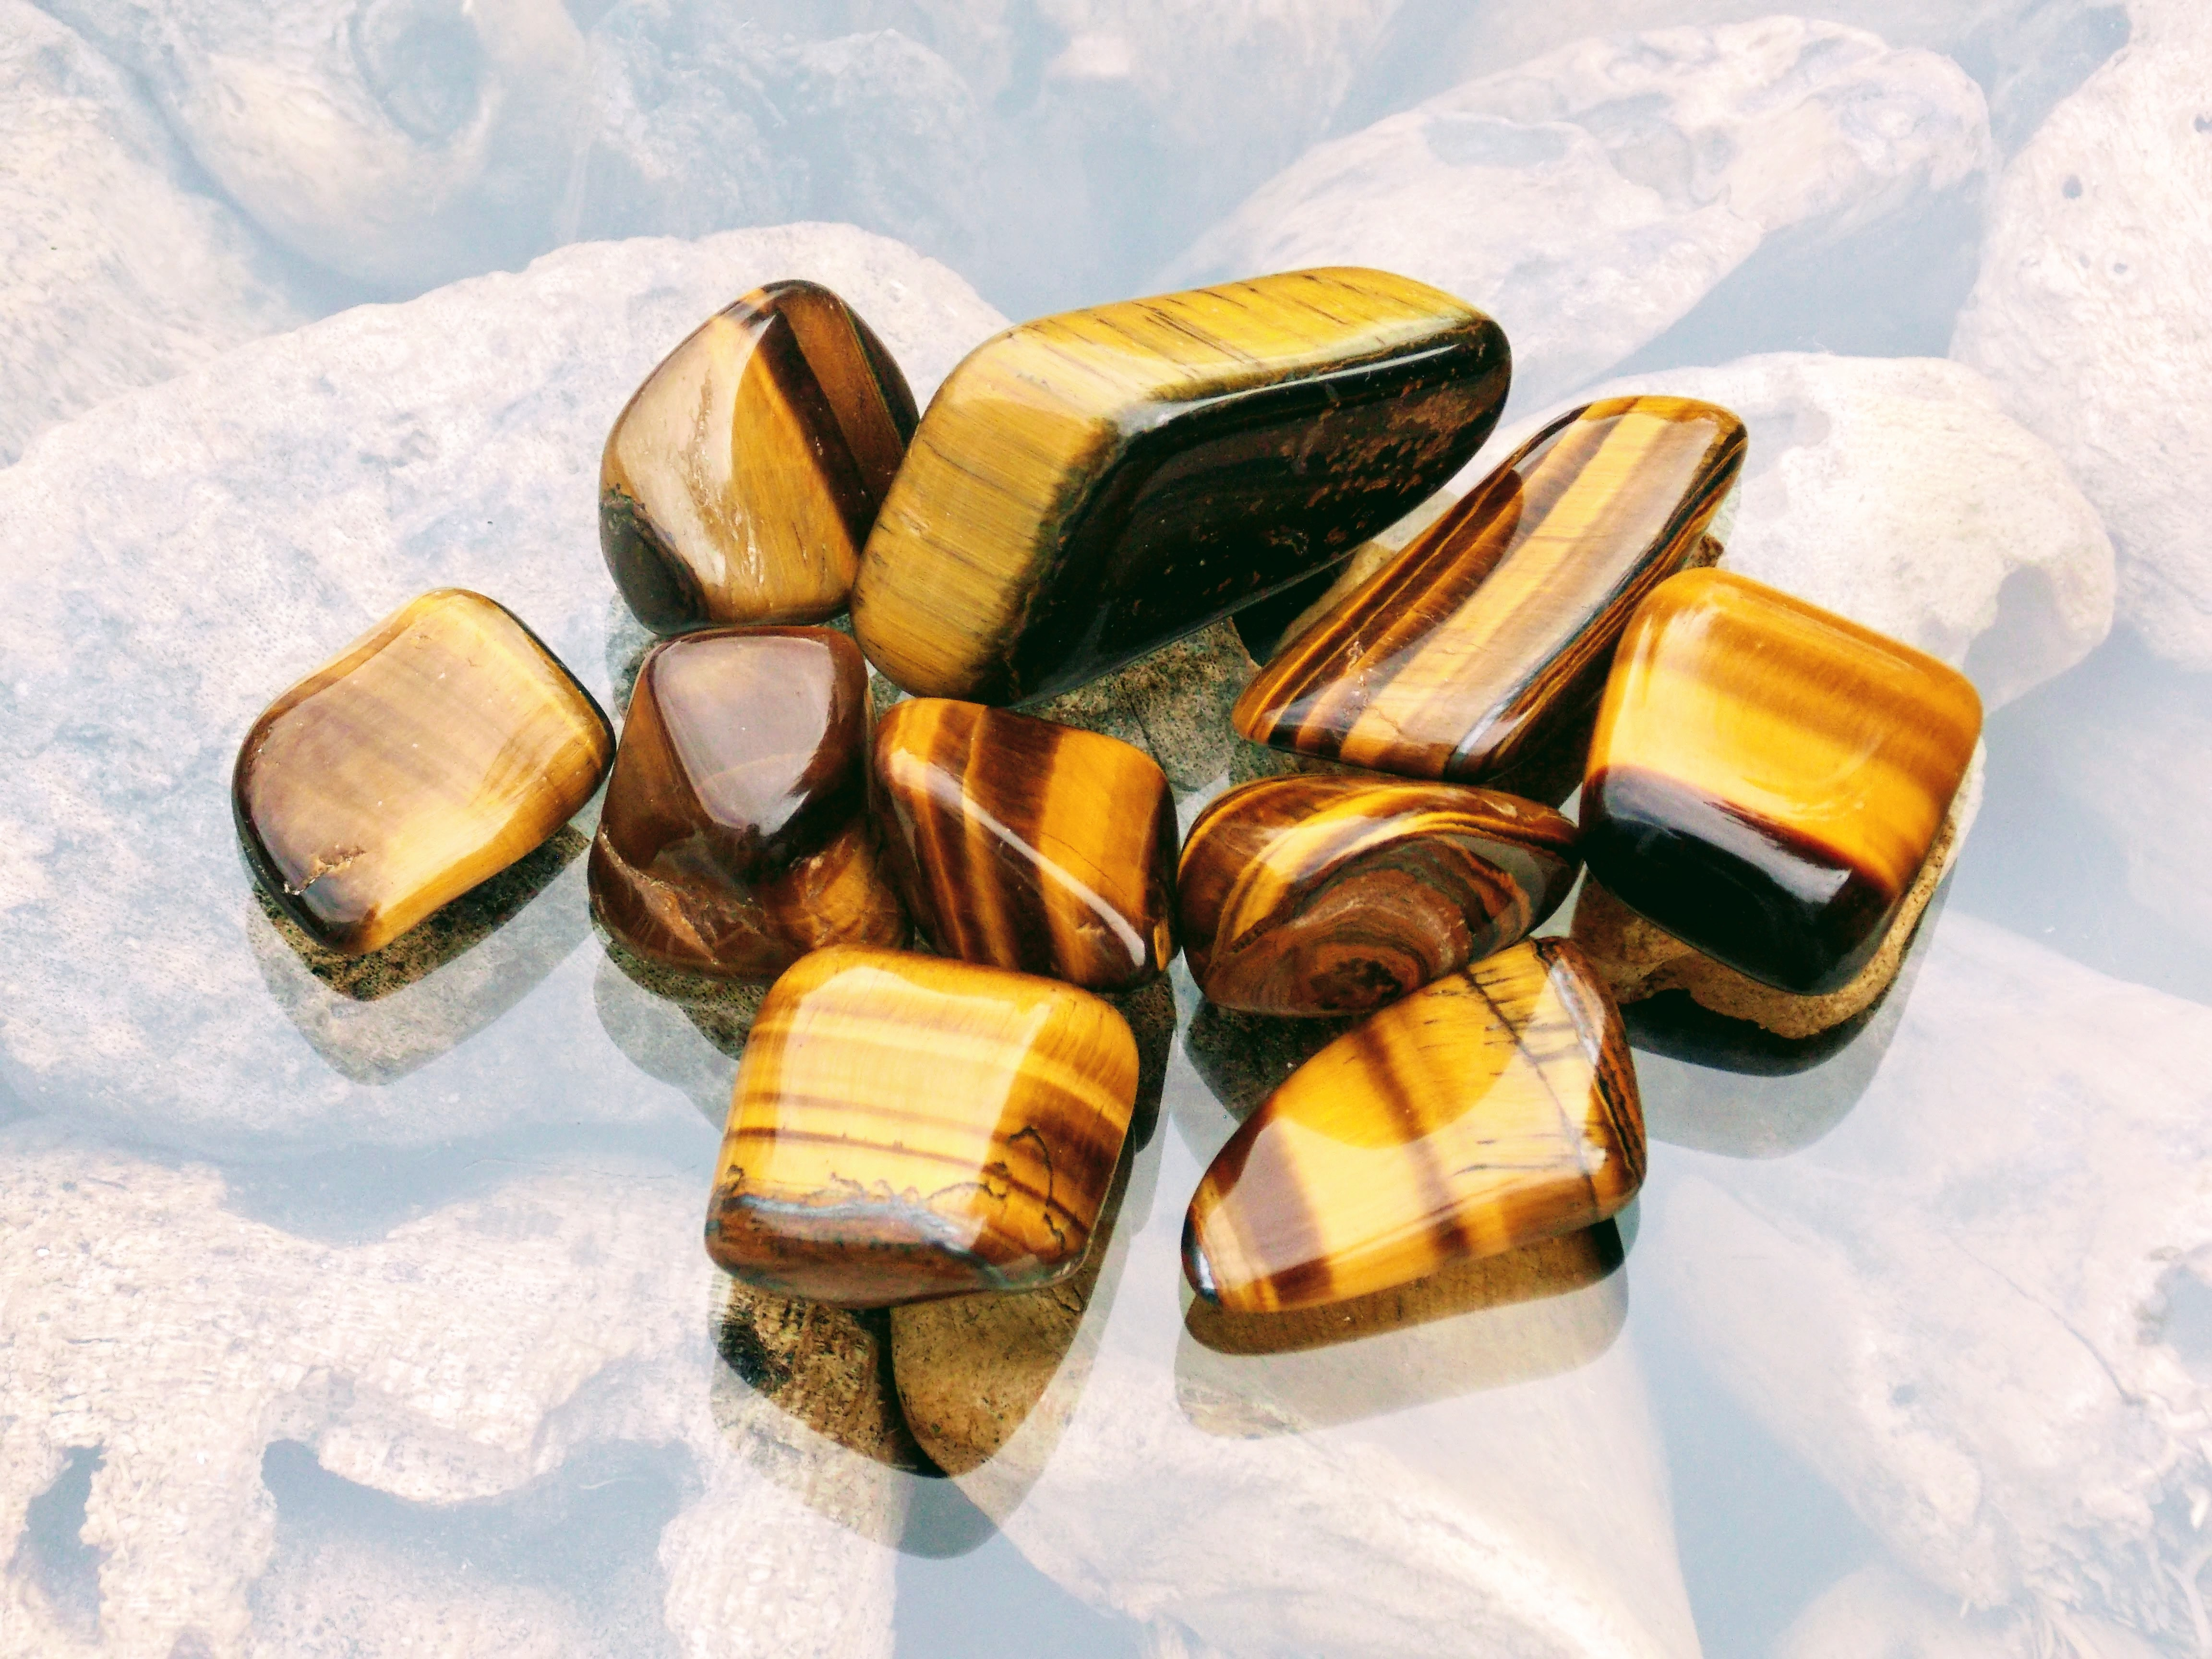 Golden Tiger Eye Tumblestones